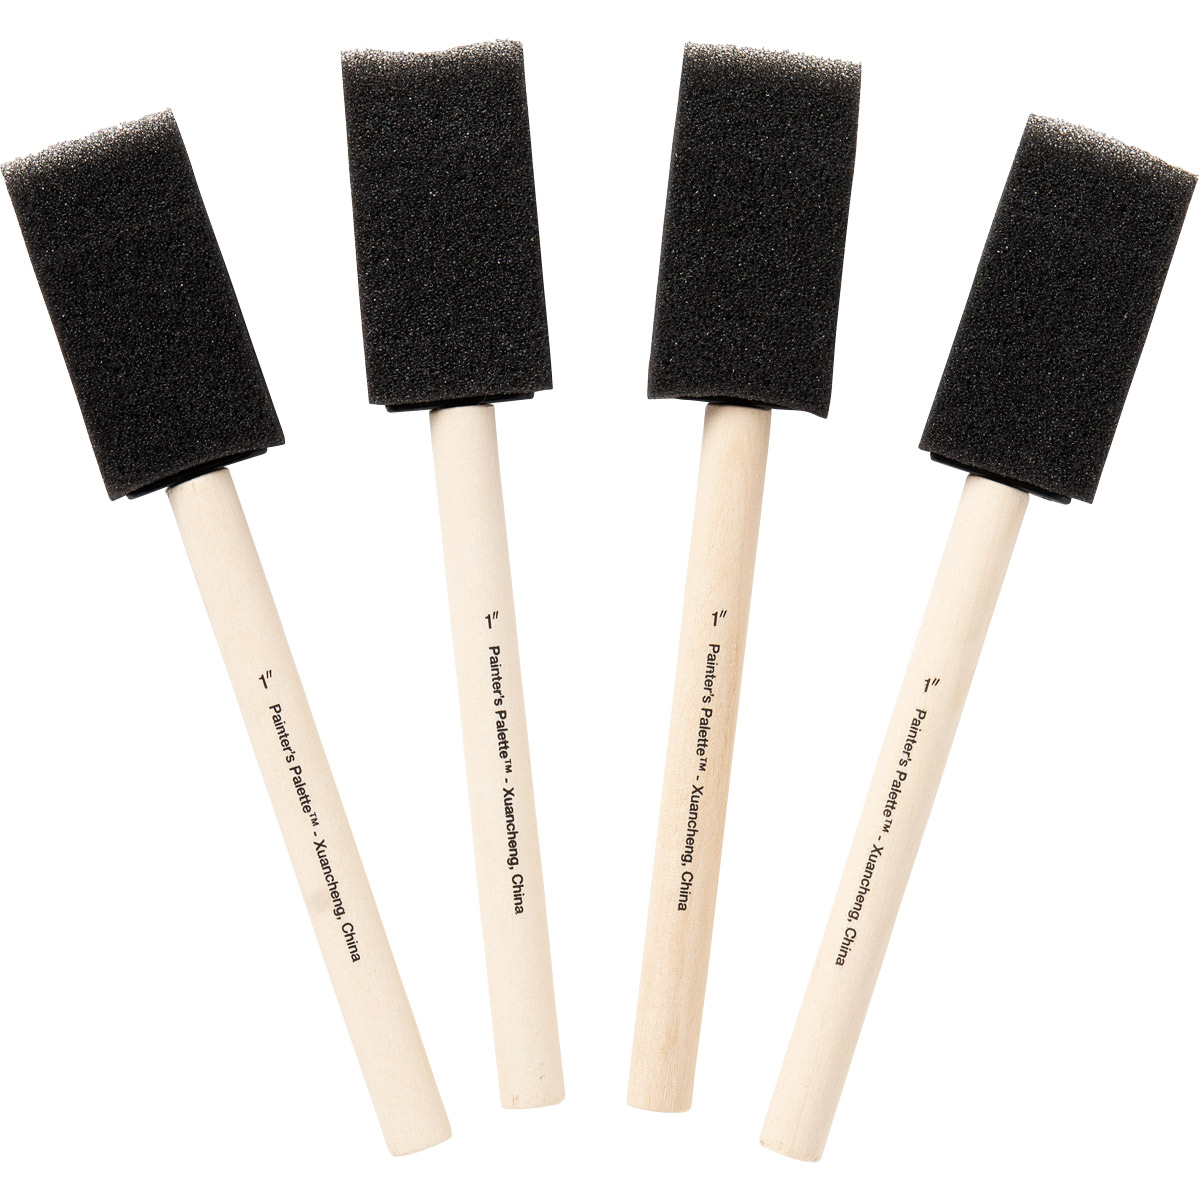 Plaid ® Painter's Palette™ Foam Brush Set, 1 inch, 4 pcs.